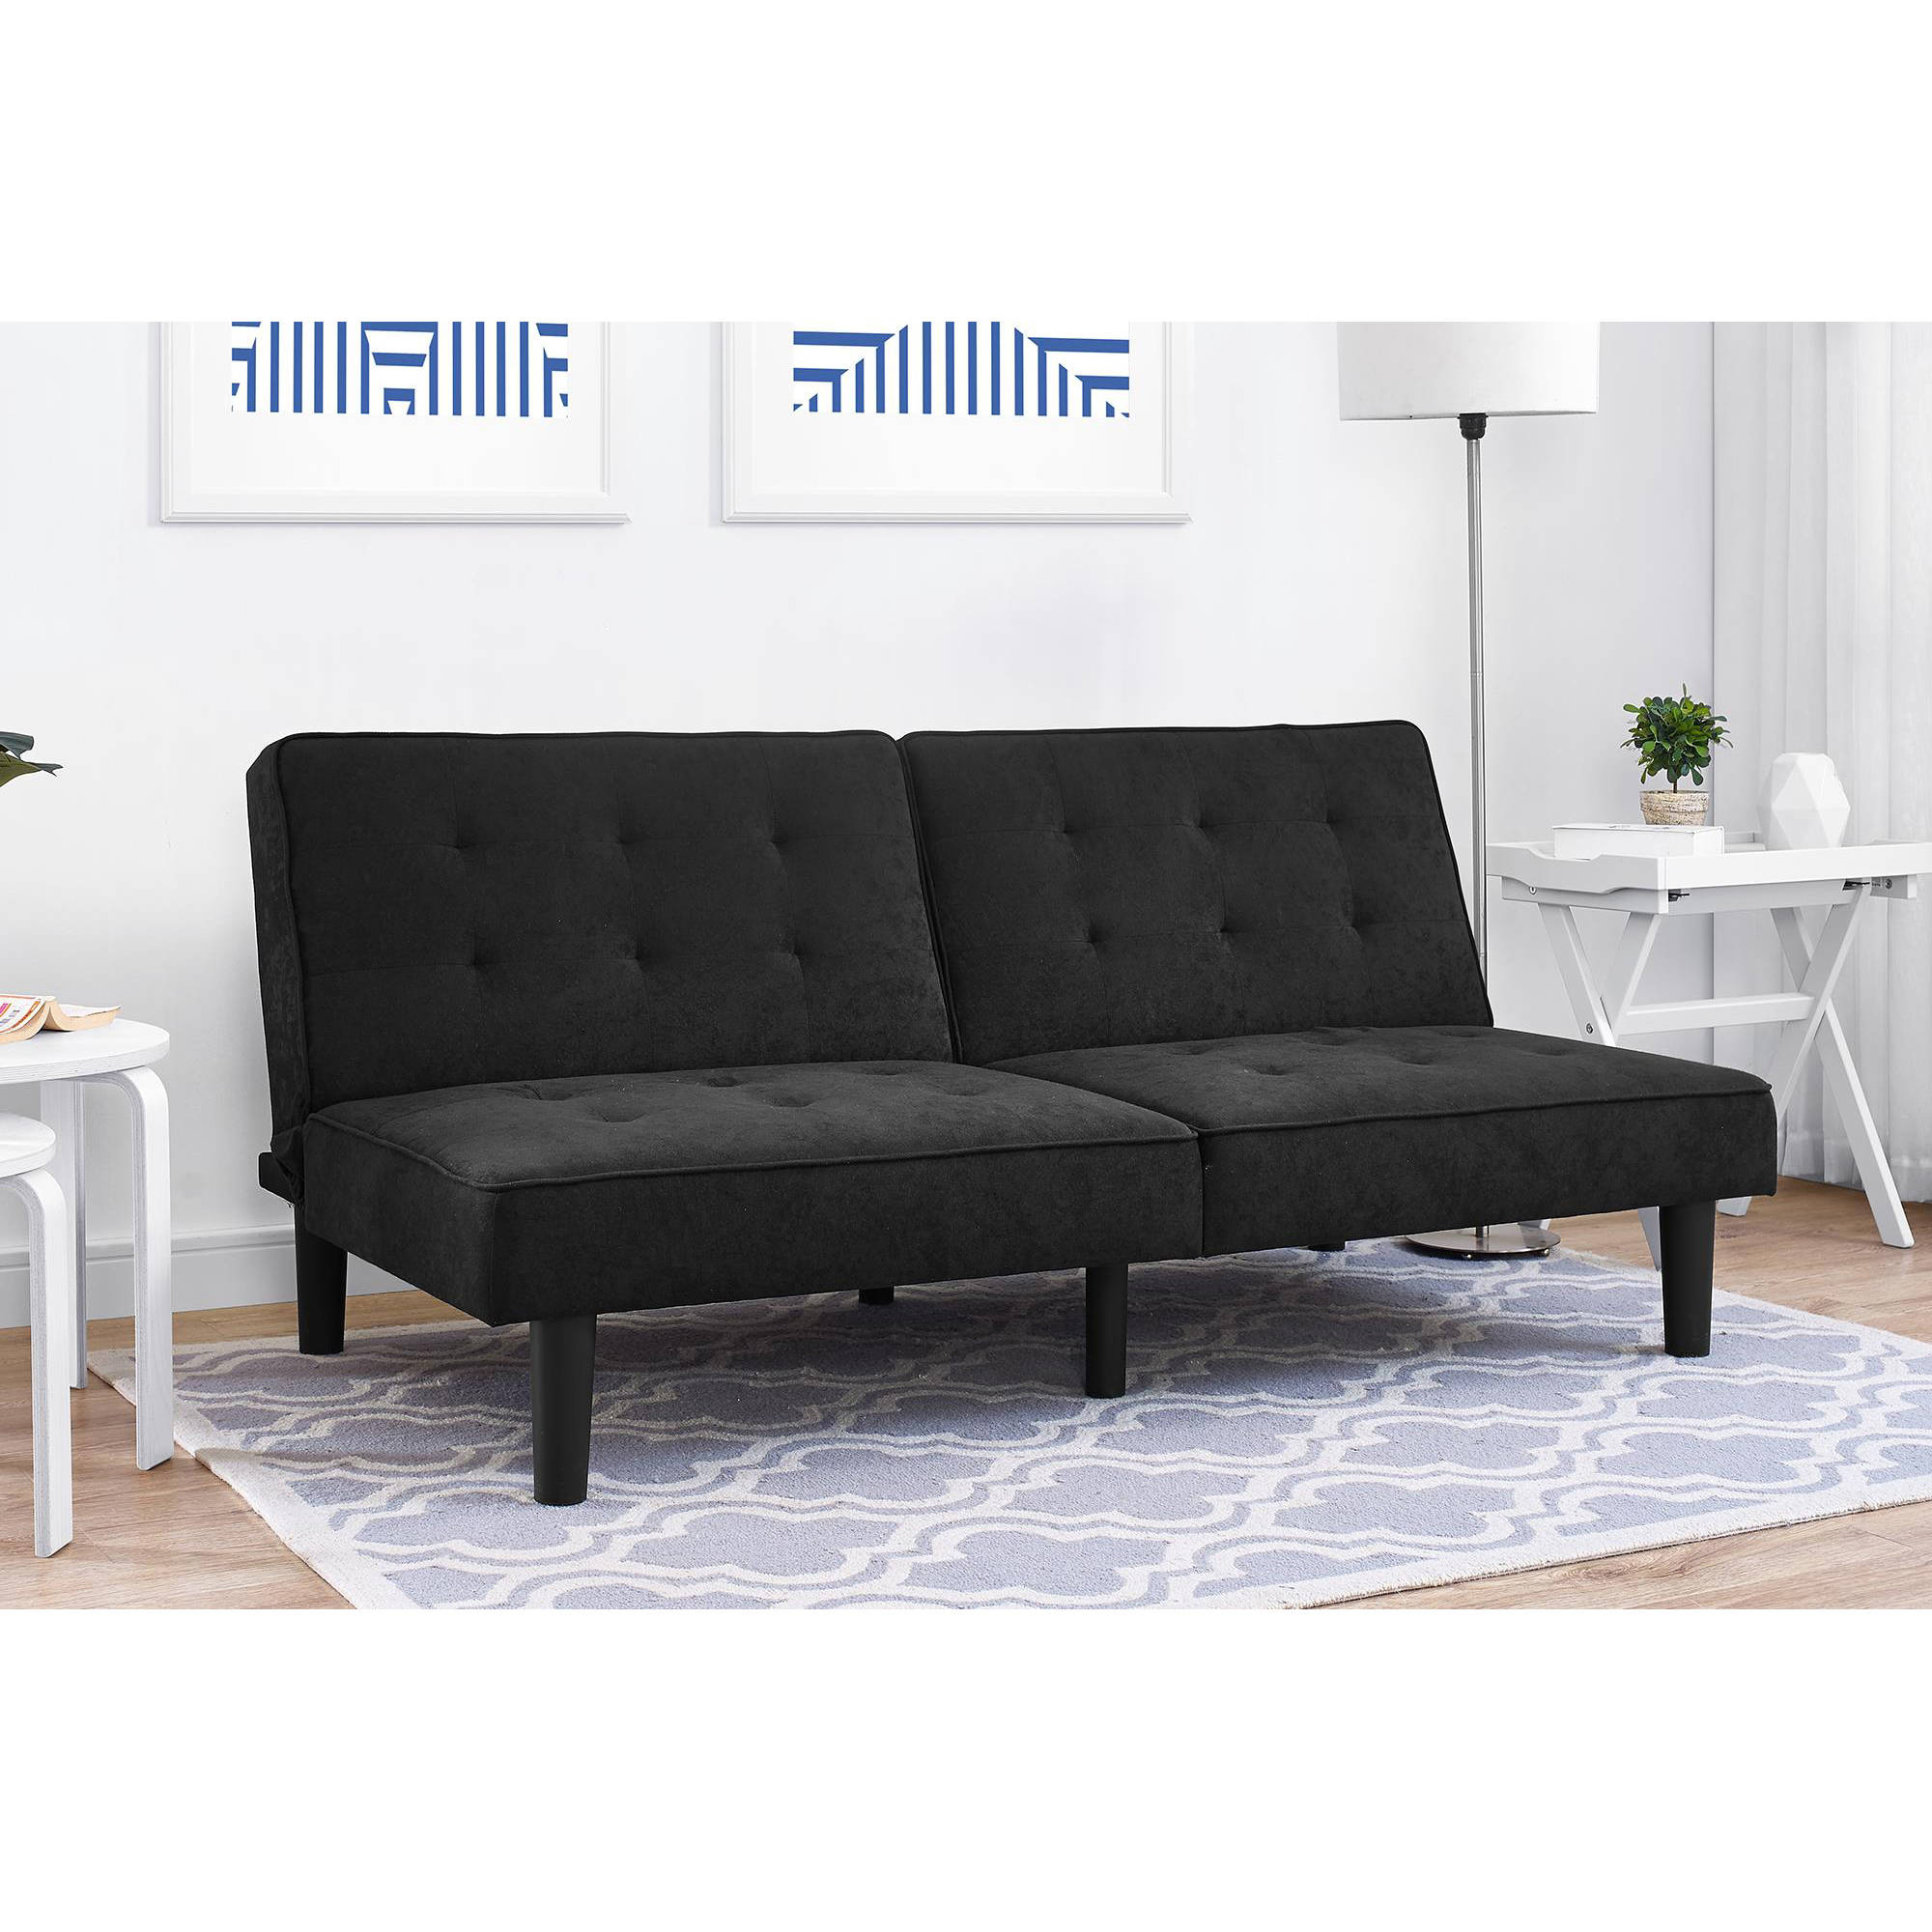 beds bed sofa with shop color nailhead couch futon futons velvet and trim coaster upholstery transitional products